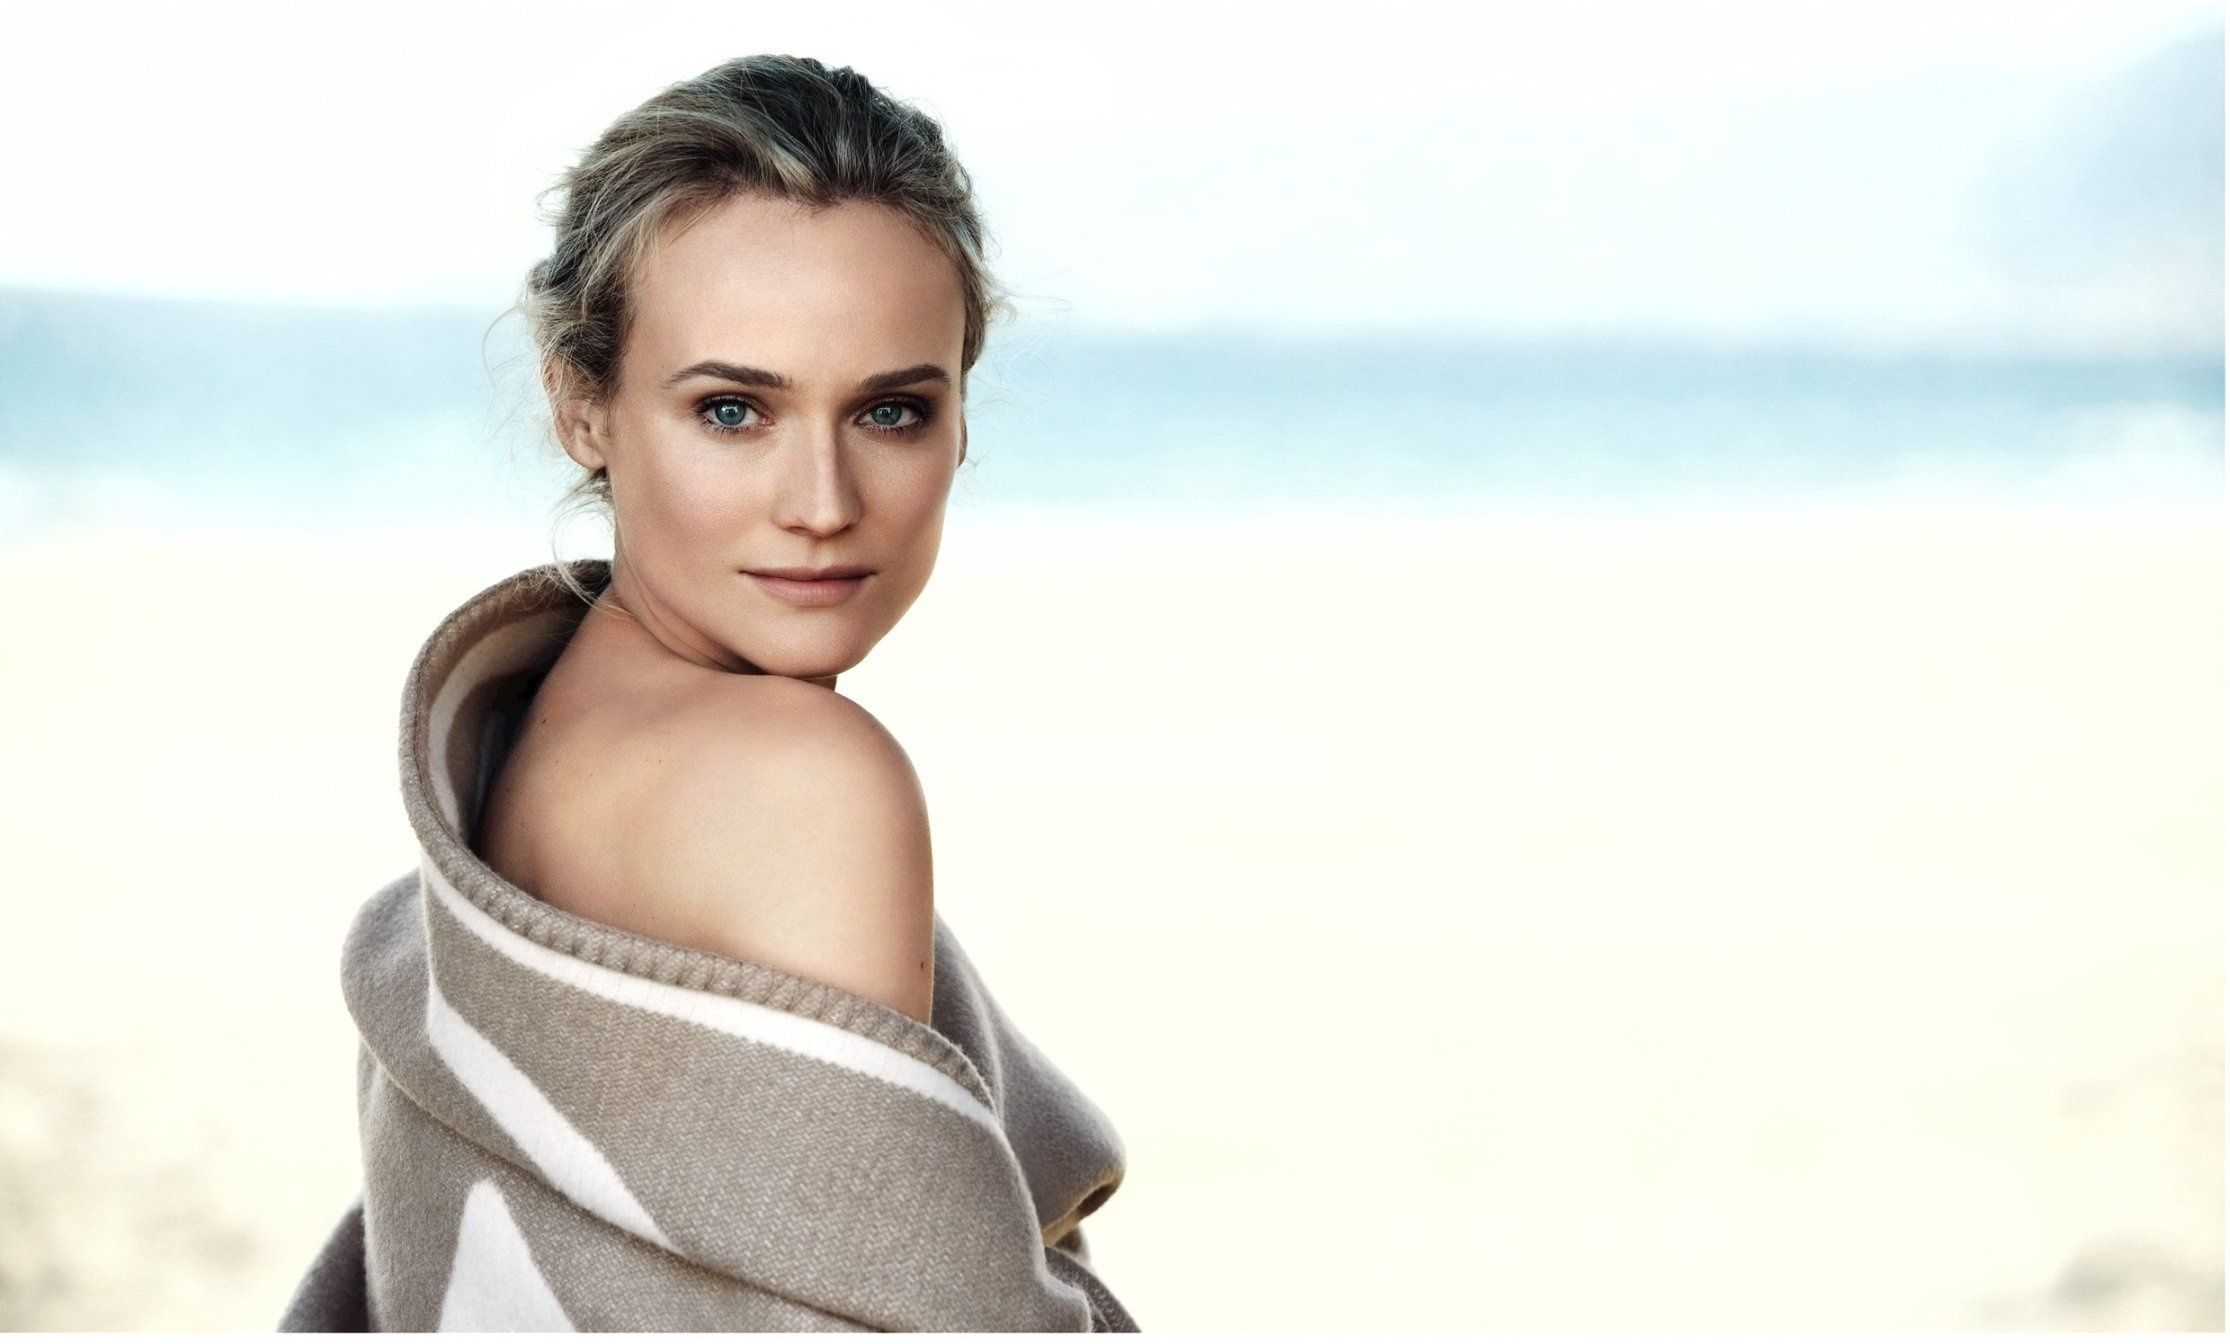 6365-diane-kruger-the-new-face-of-chanel-skincare